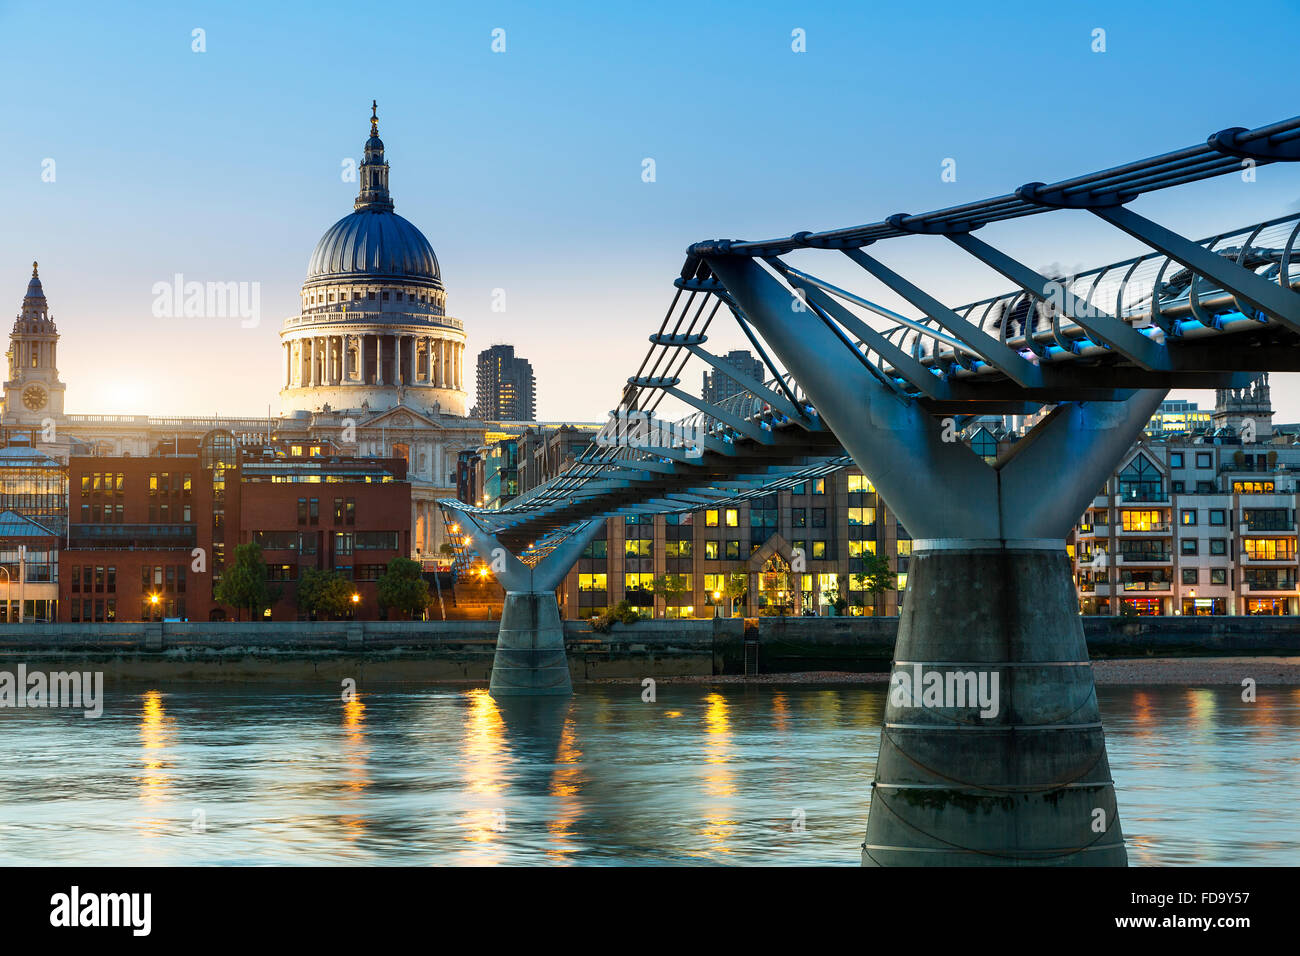 London millennium Footbridge at dusk - Stock Image